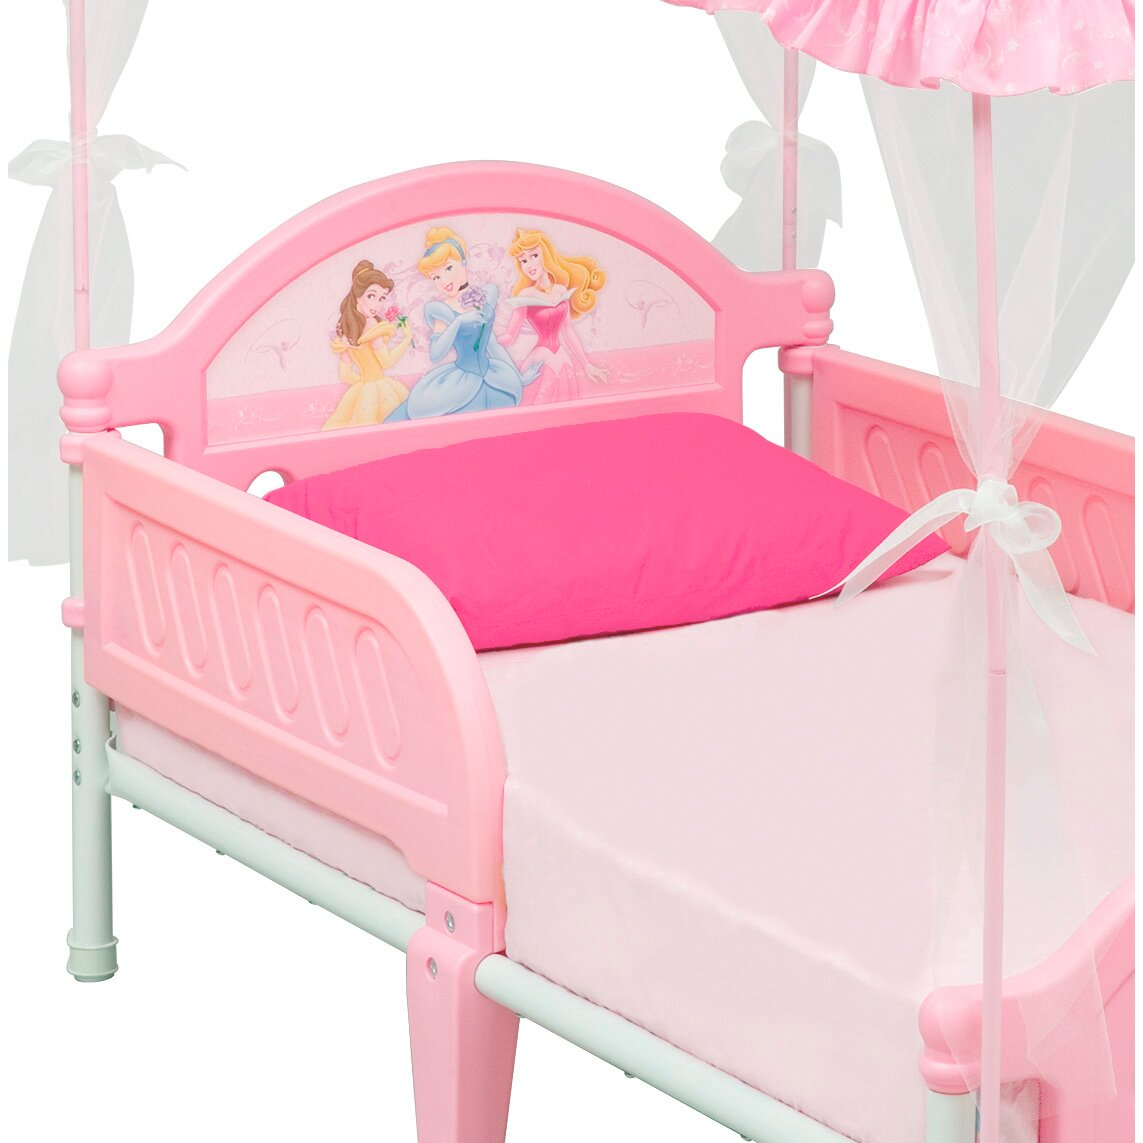 delta children disney princess convertible toddler bed. Black Bedroom Furniture Sets. Home Design Ideas